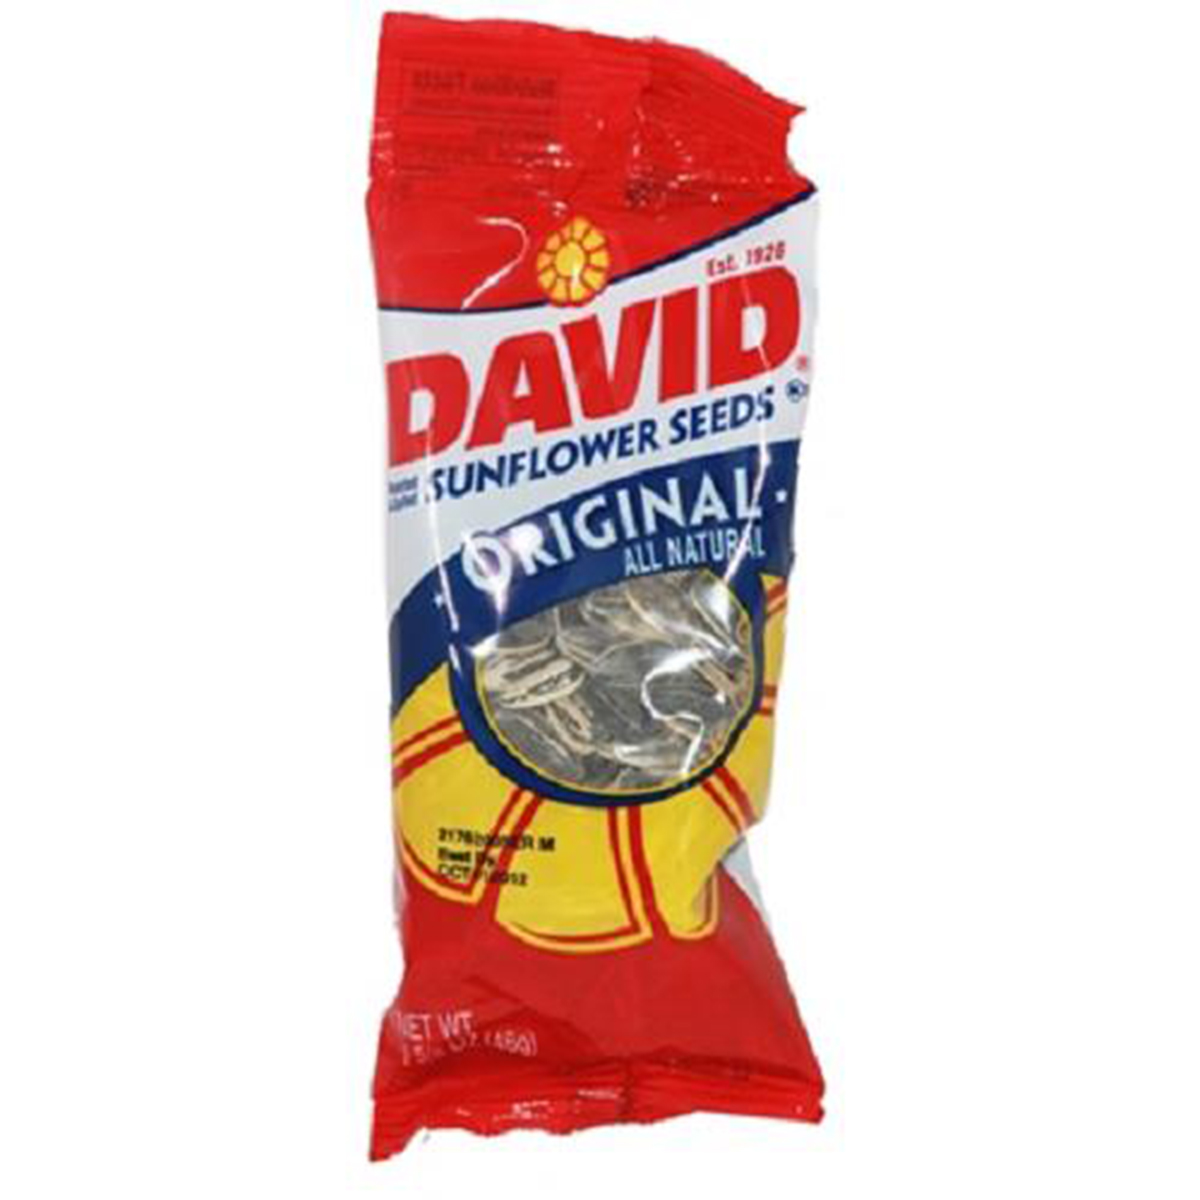 Product Of David, Sunflower Seeds Original , Count 12 (1.625 oz) - Sunflower Seeds / Grab Varieties & Flavors